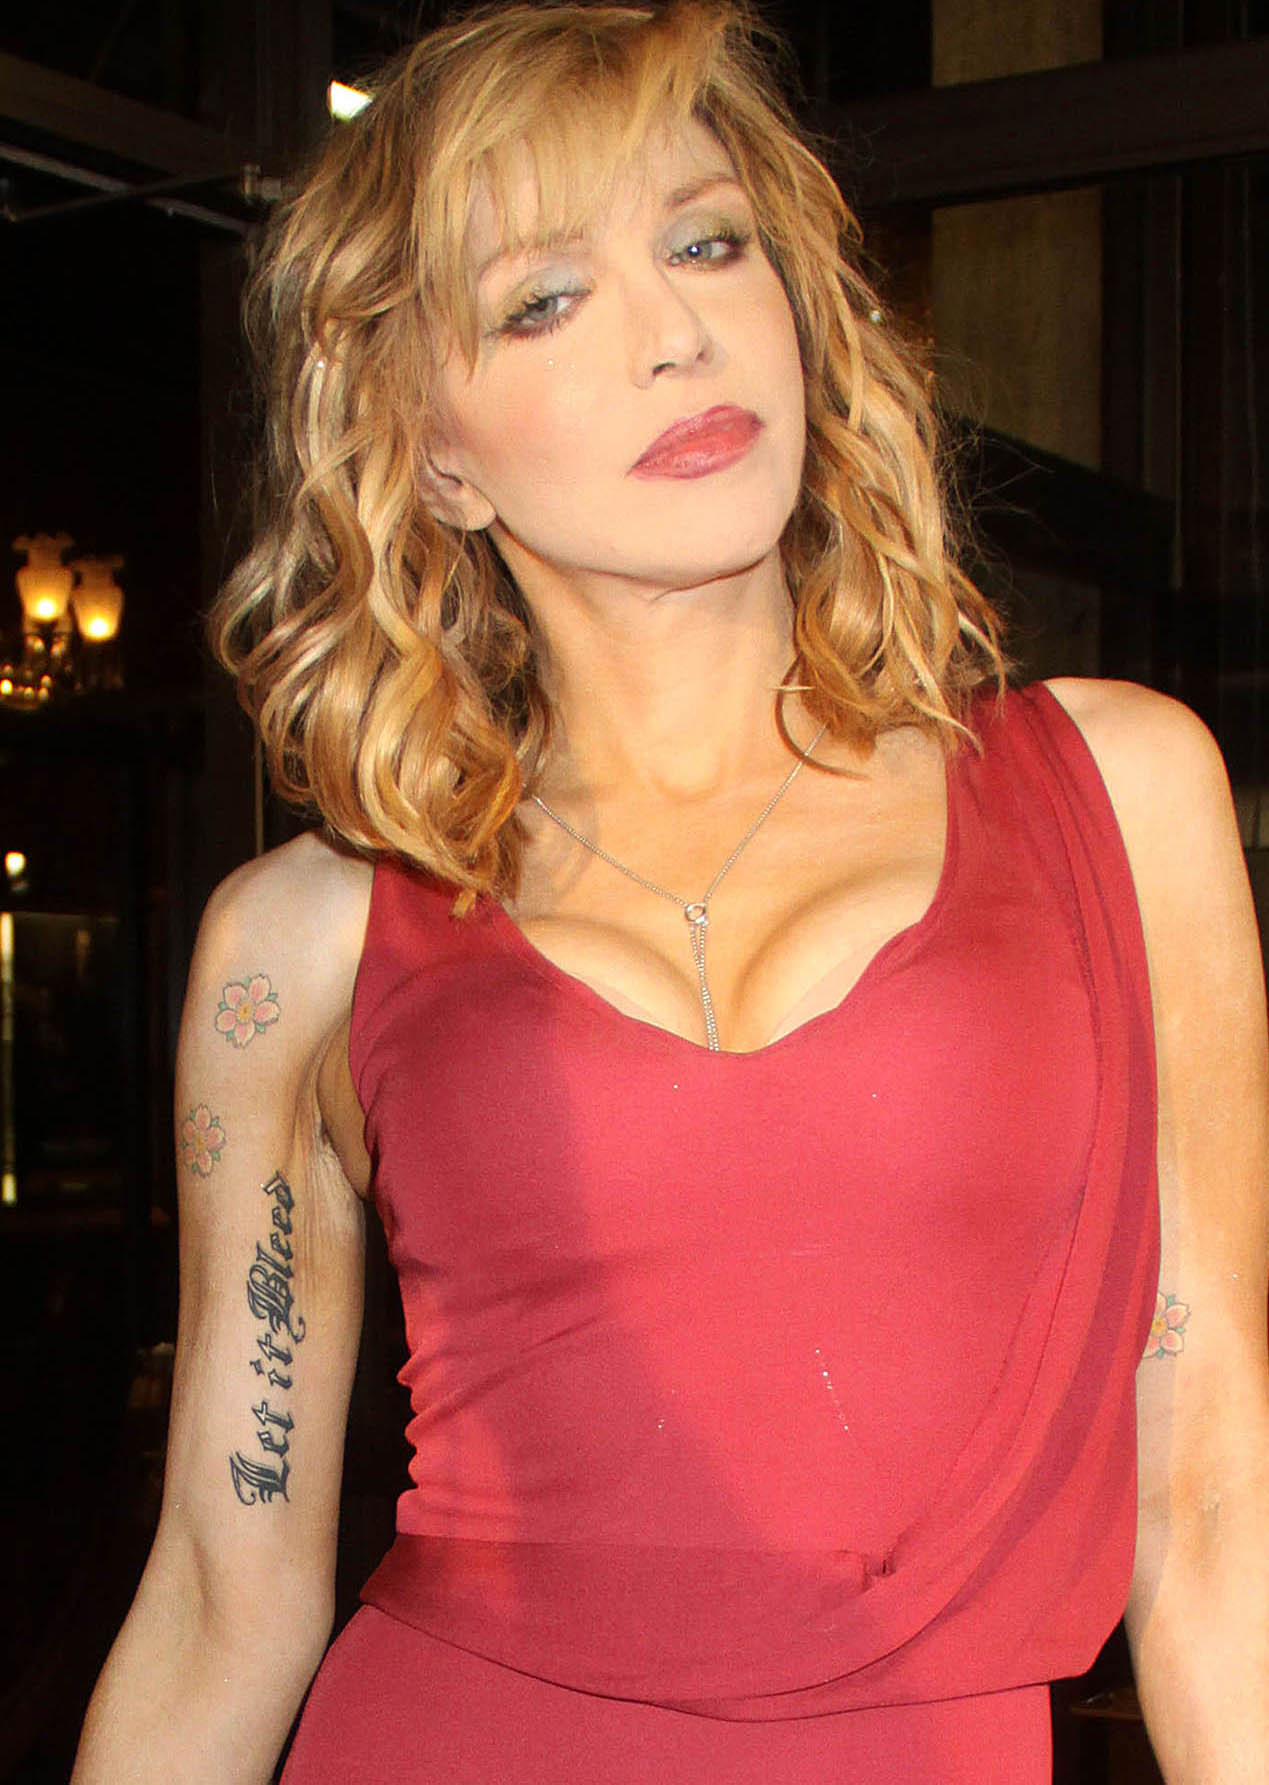 Courtney love shows pussy